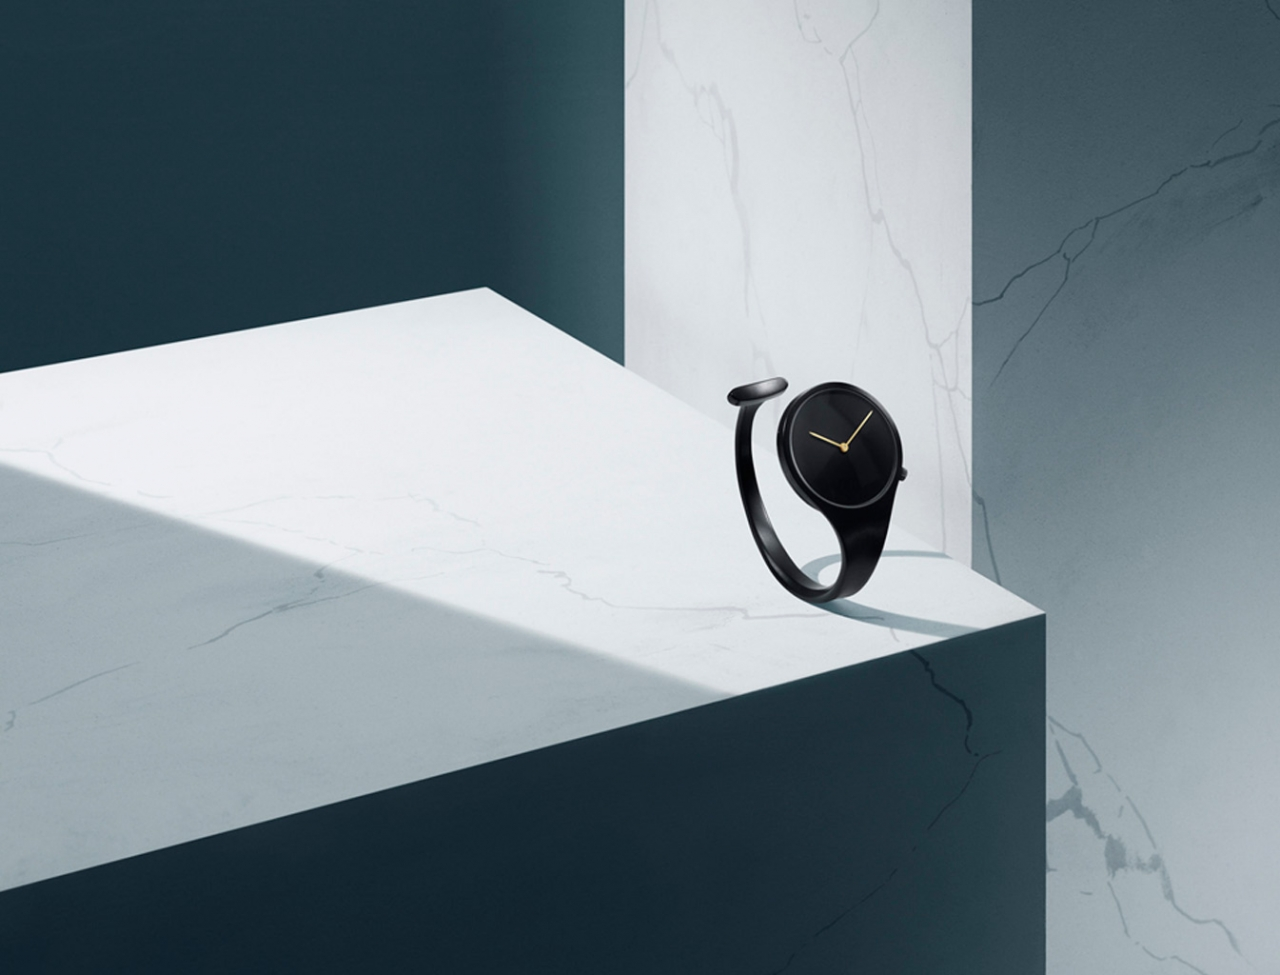 Molly Kyhl georg jensen aw15